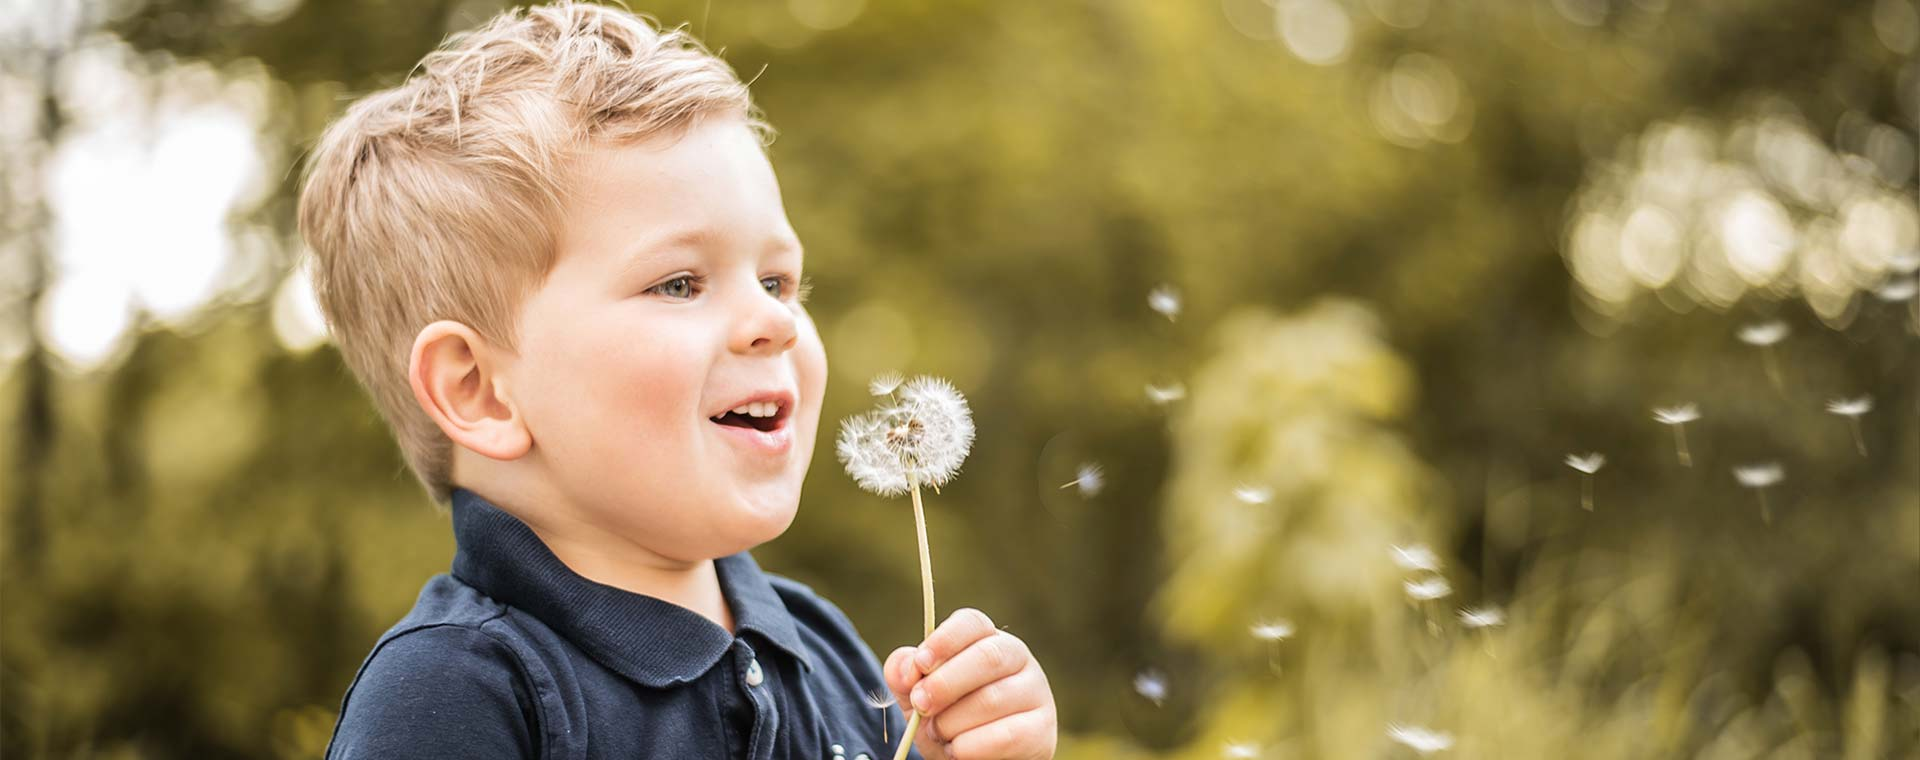 A toddler boy is standing in a field and holding a dandelion that has gone to seed. He blows gently on the dandelion and the seeds float away.